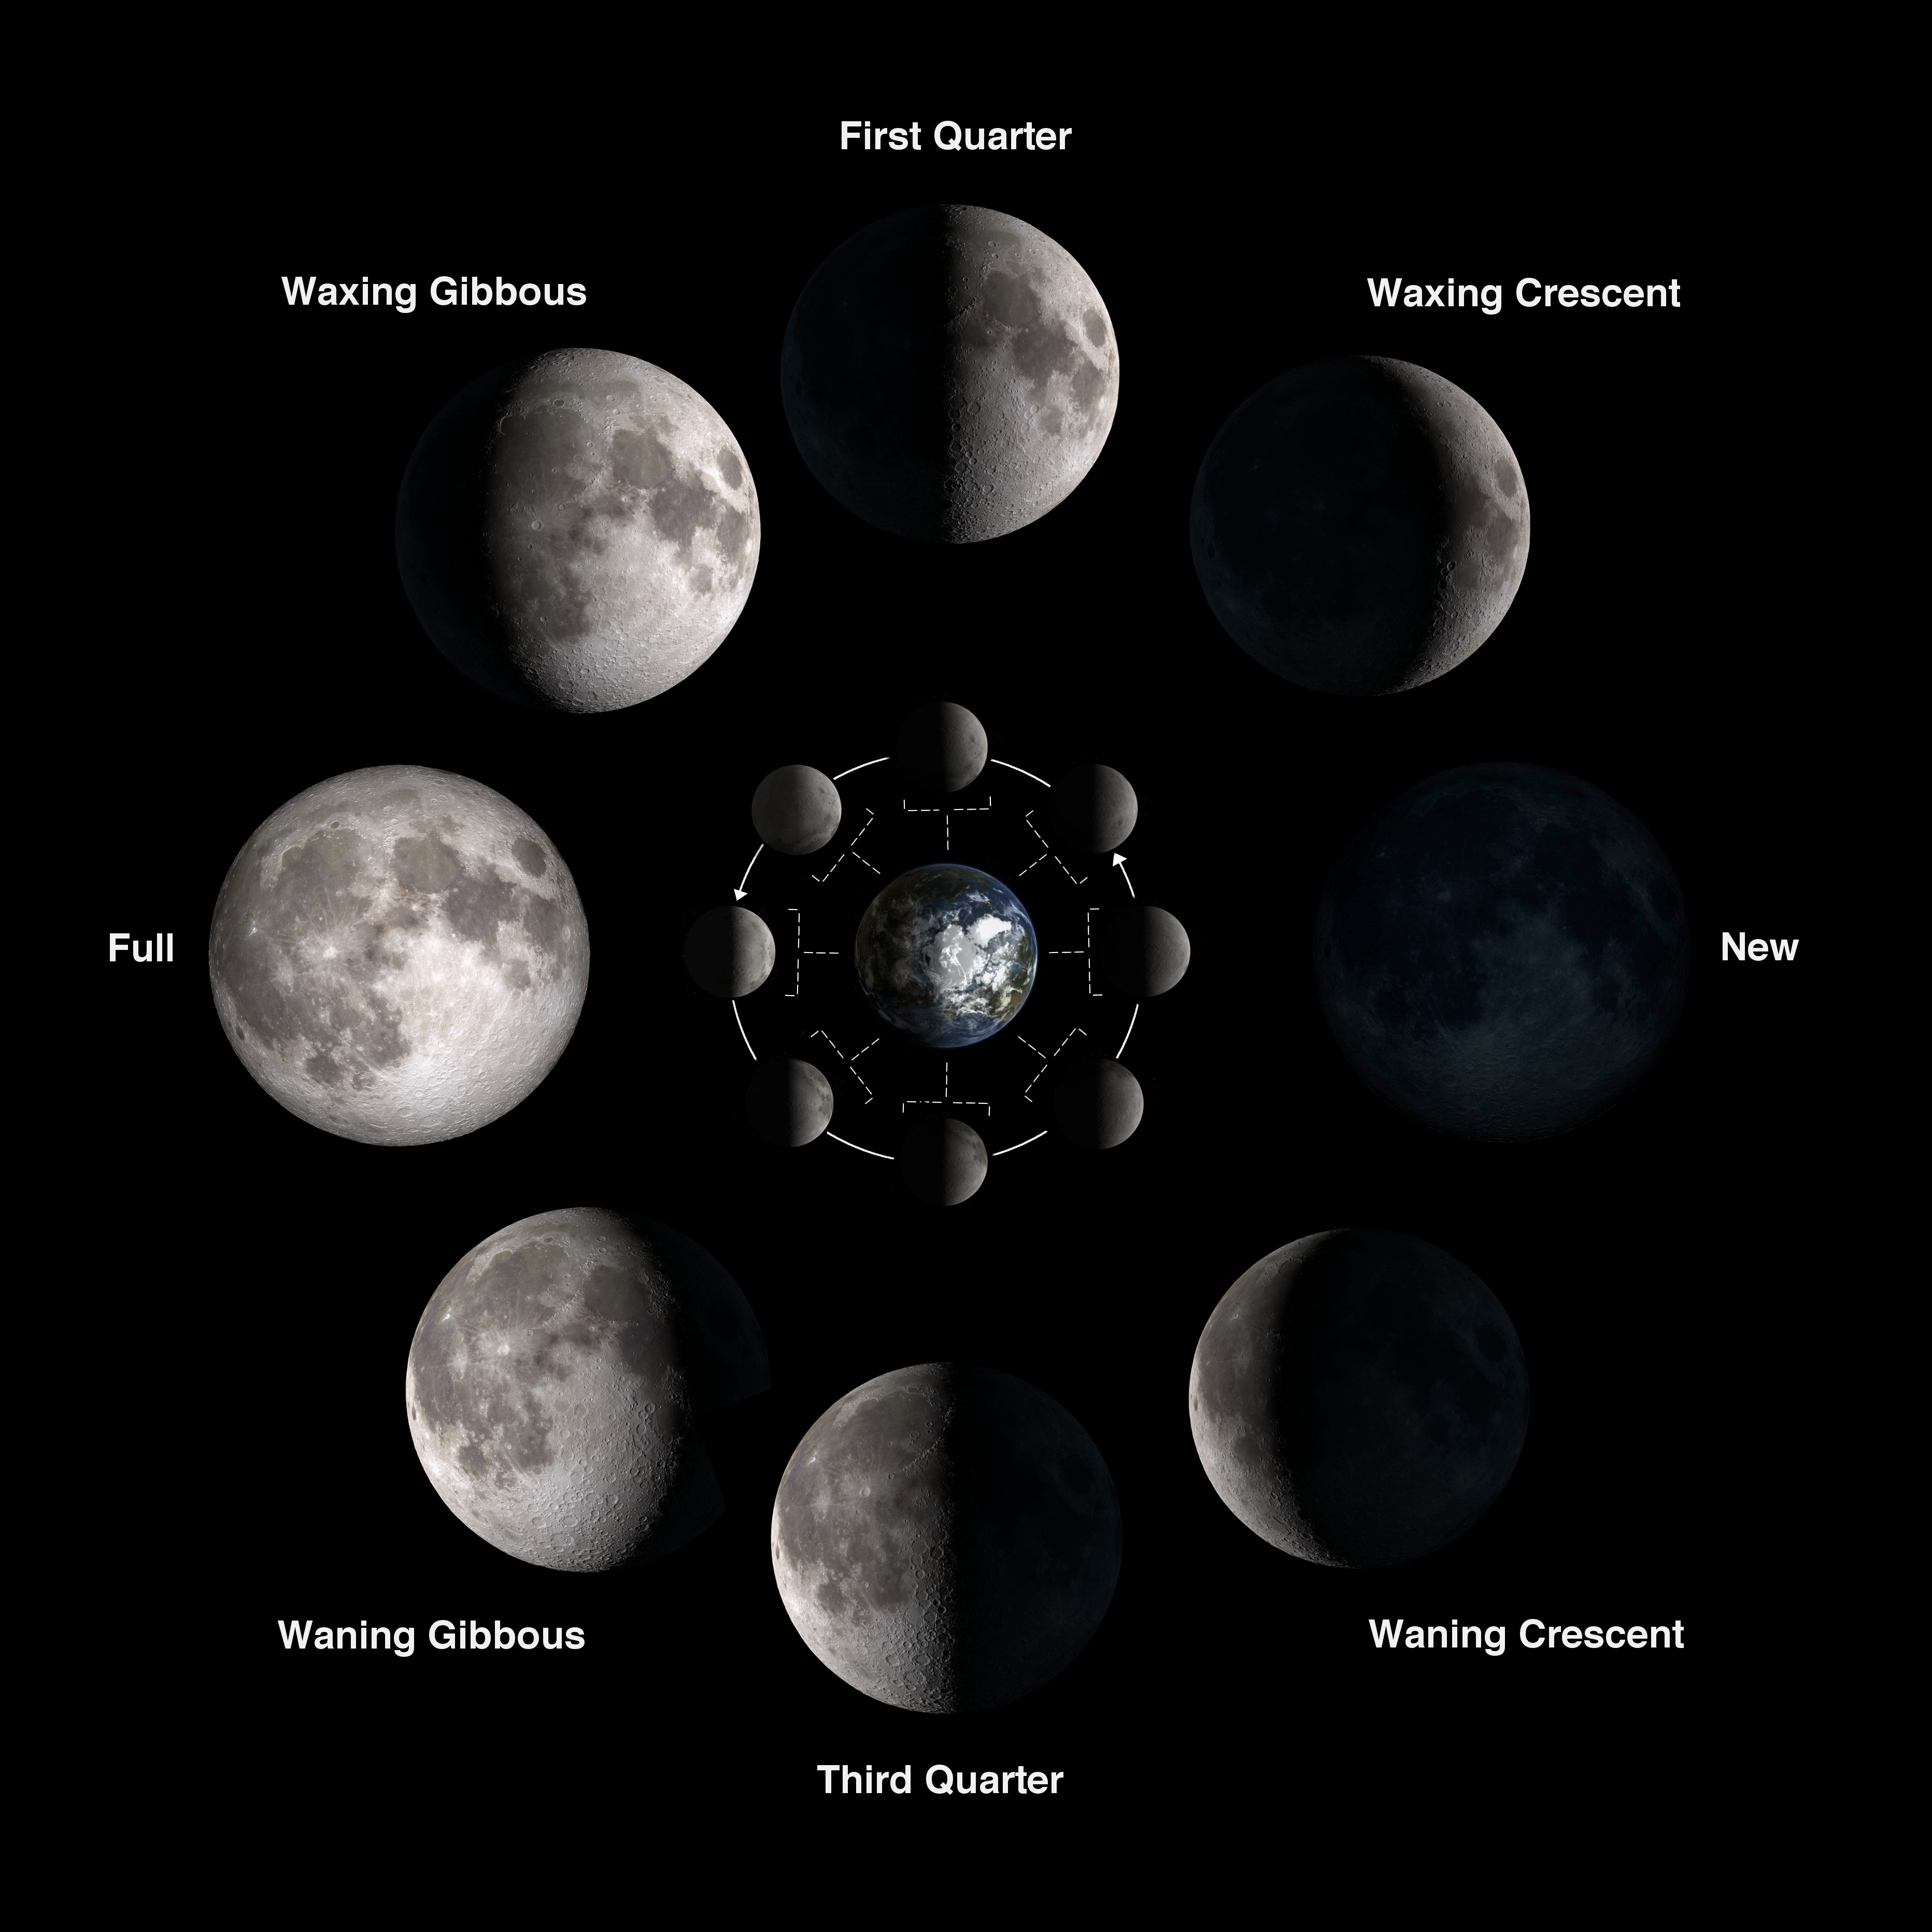 How the phases of the Moon work Credit NASABill Dunford 3728x3728